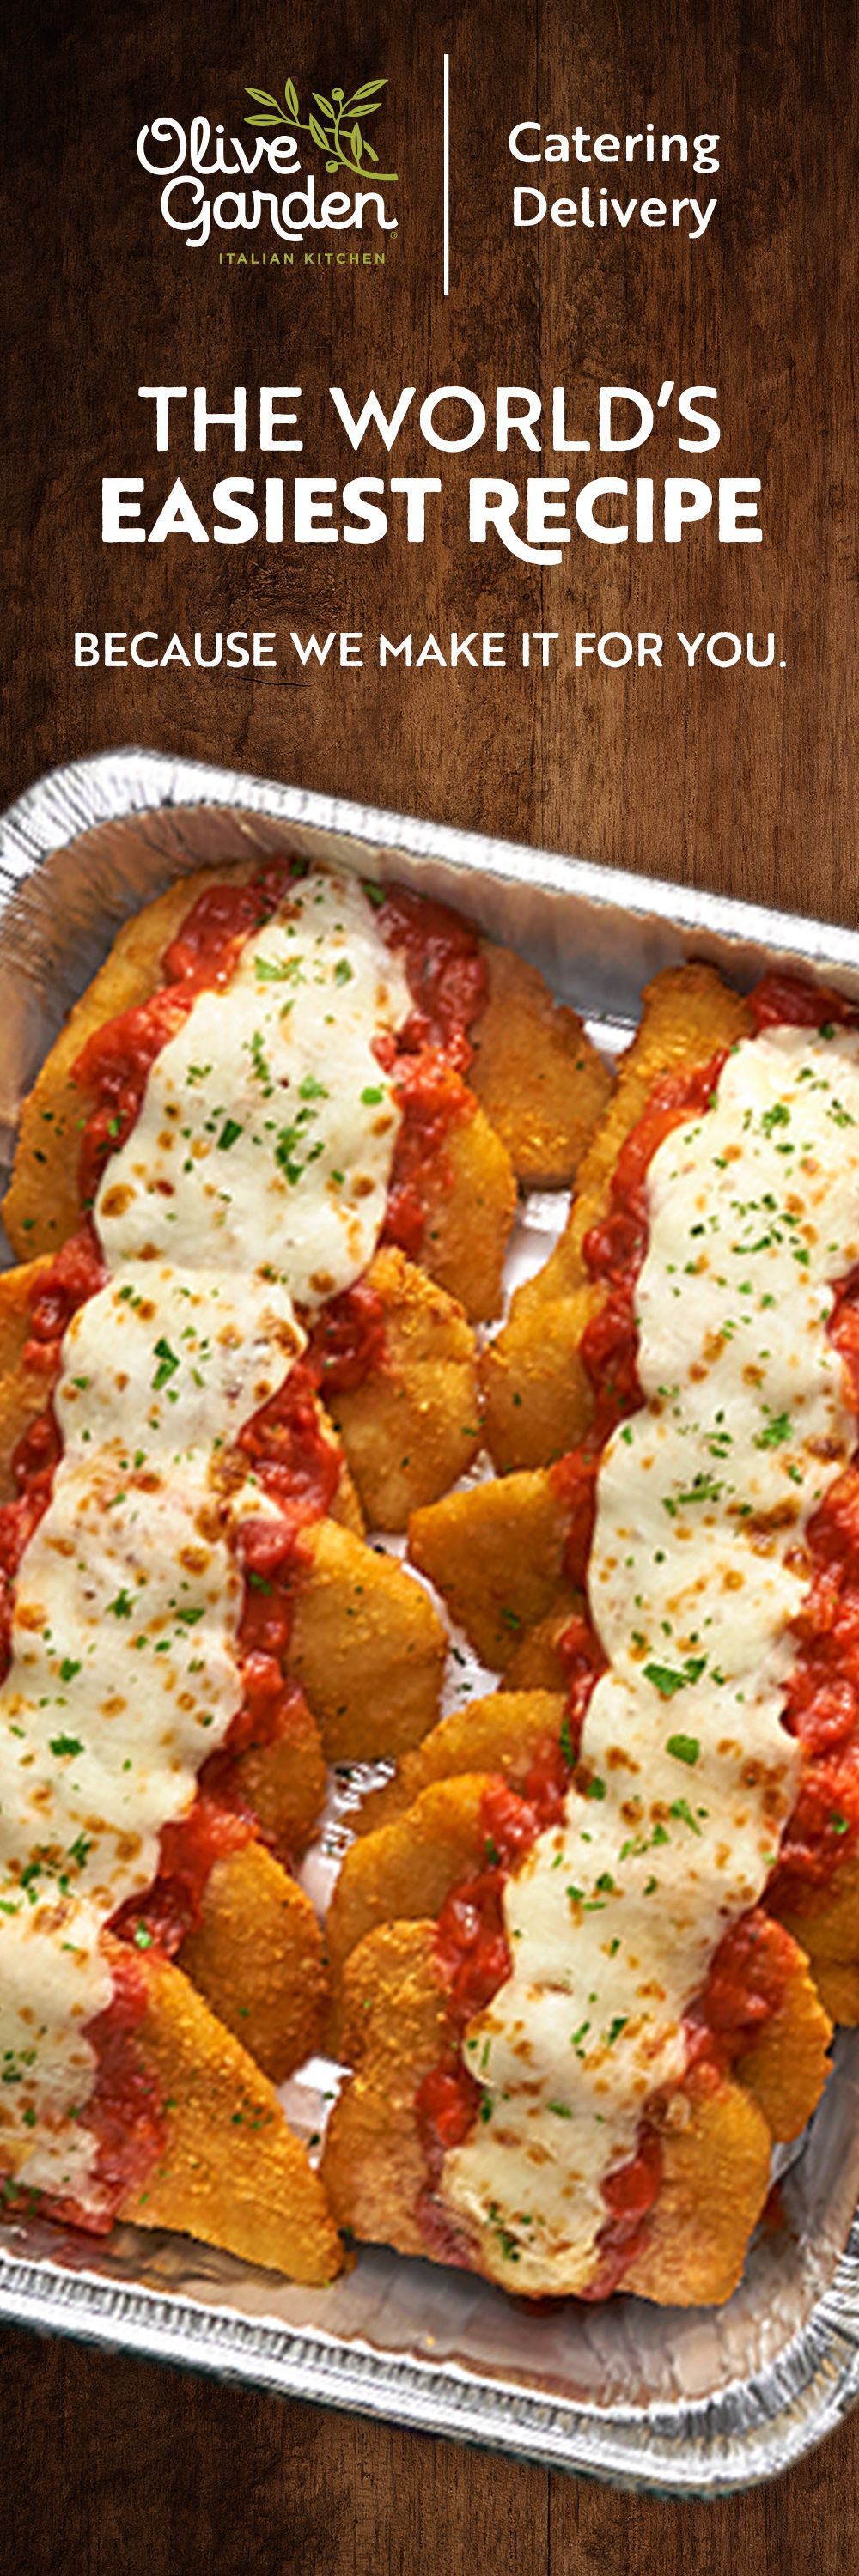 Go Easy On Yourself This Holiday Season With Olive Garden Catering Irresistible Dishes Delivered Piping Hot To Your Front Door Recipes Food Cooking